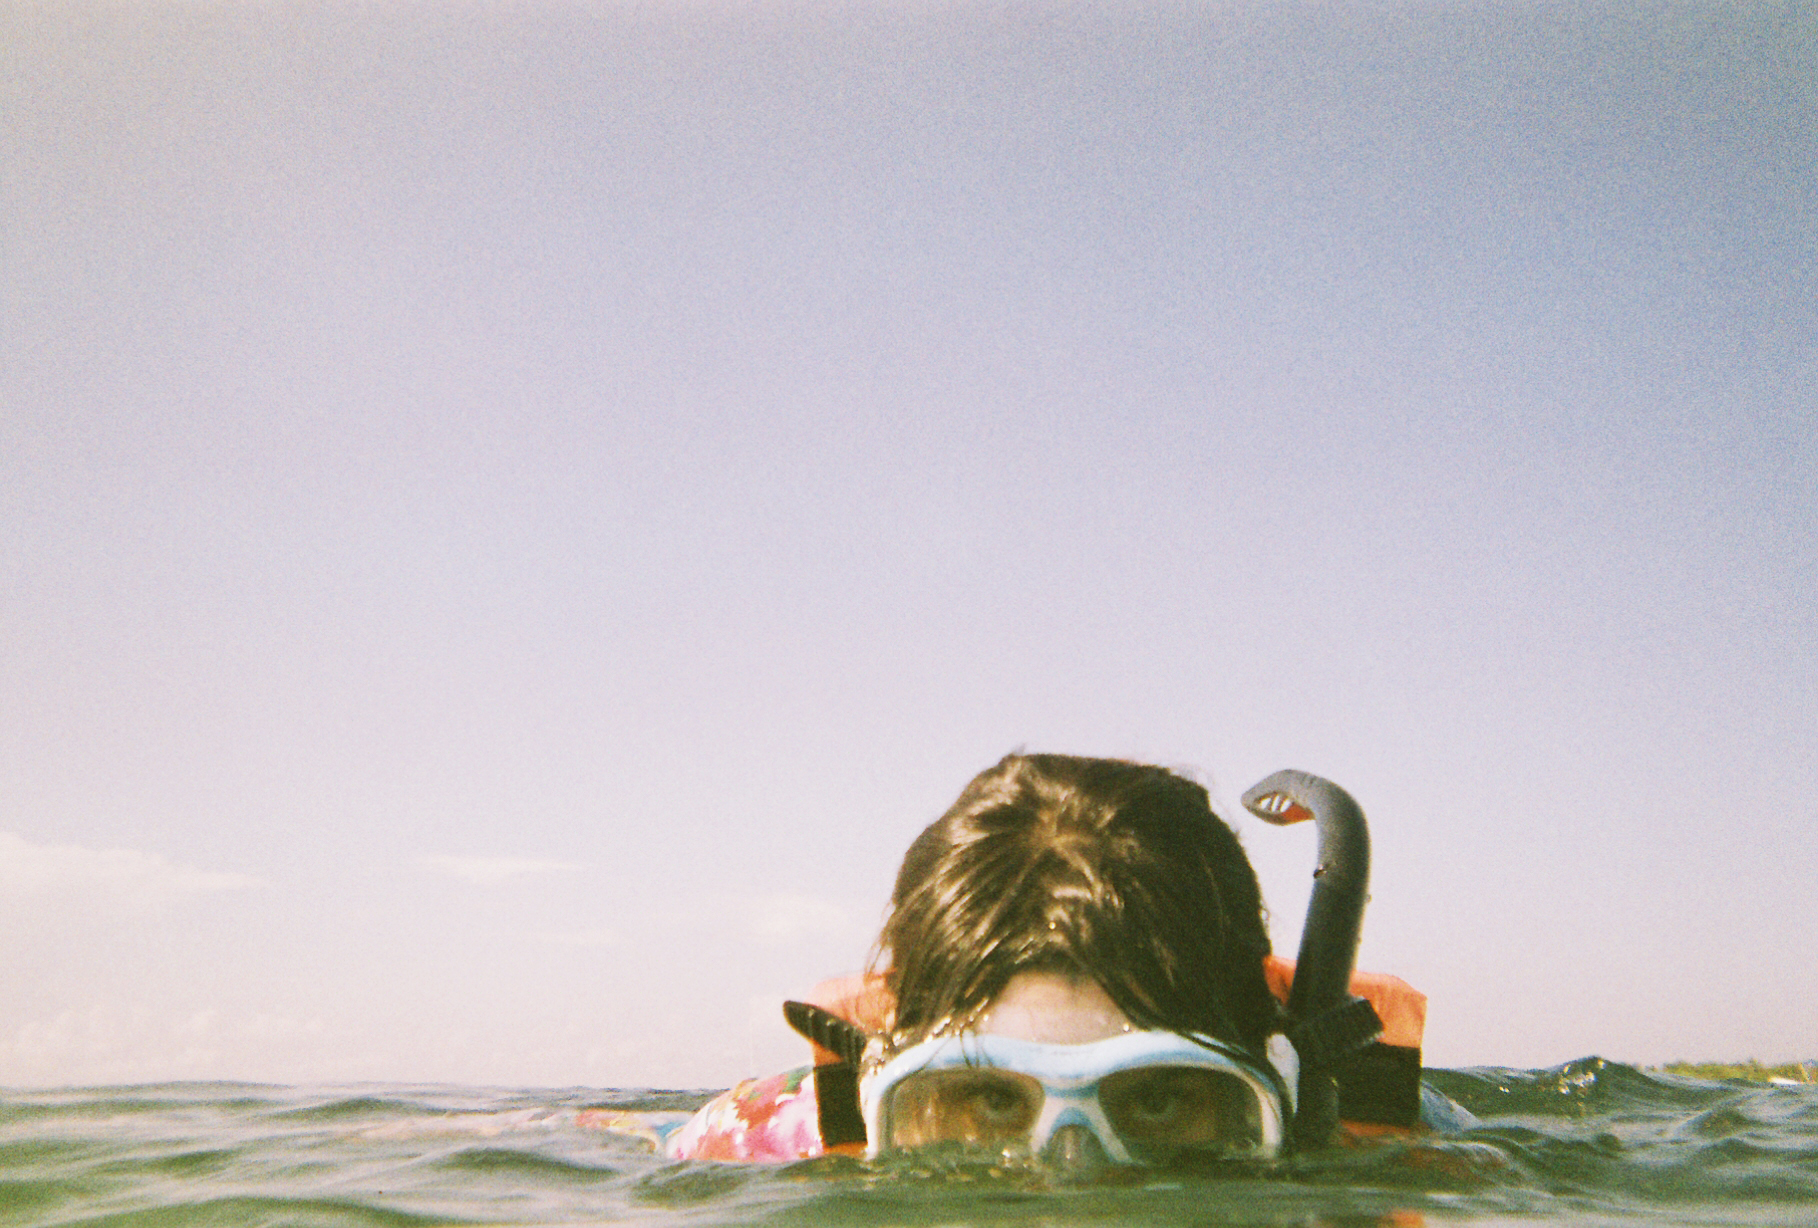 A female's eyes and hair pop out of the water. She's snorkeling in Tulum, Mexico. 35mm. Photographer Nick Barry